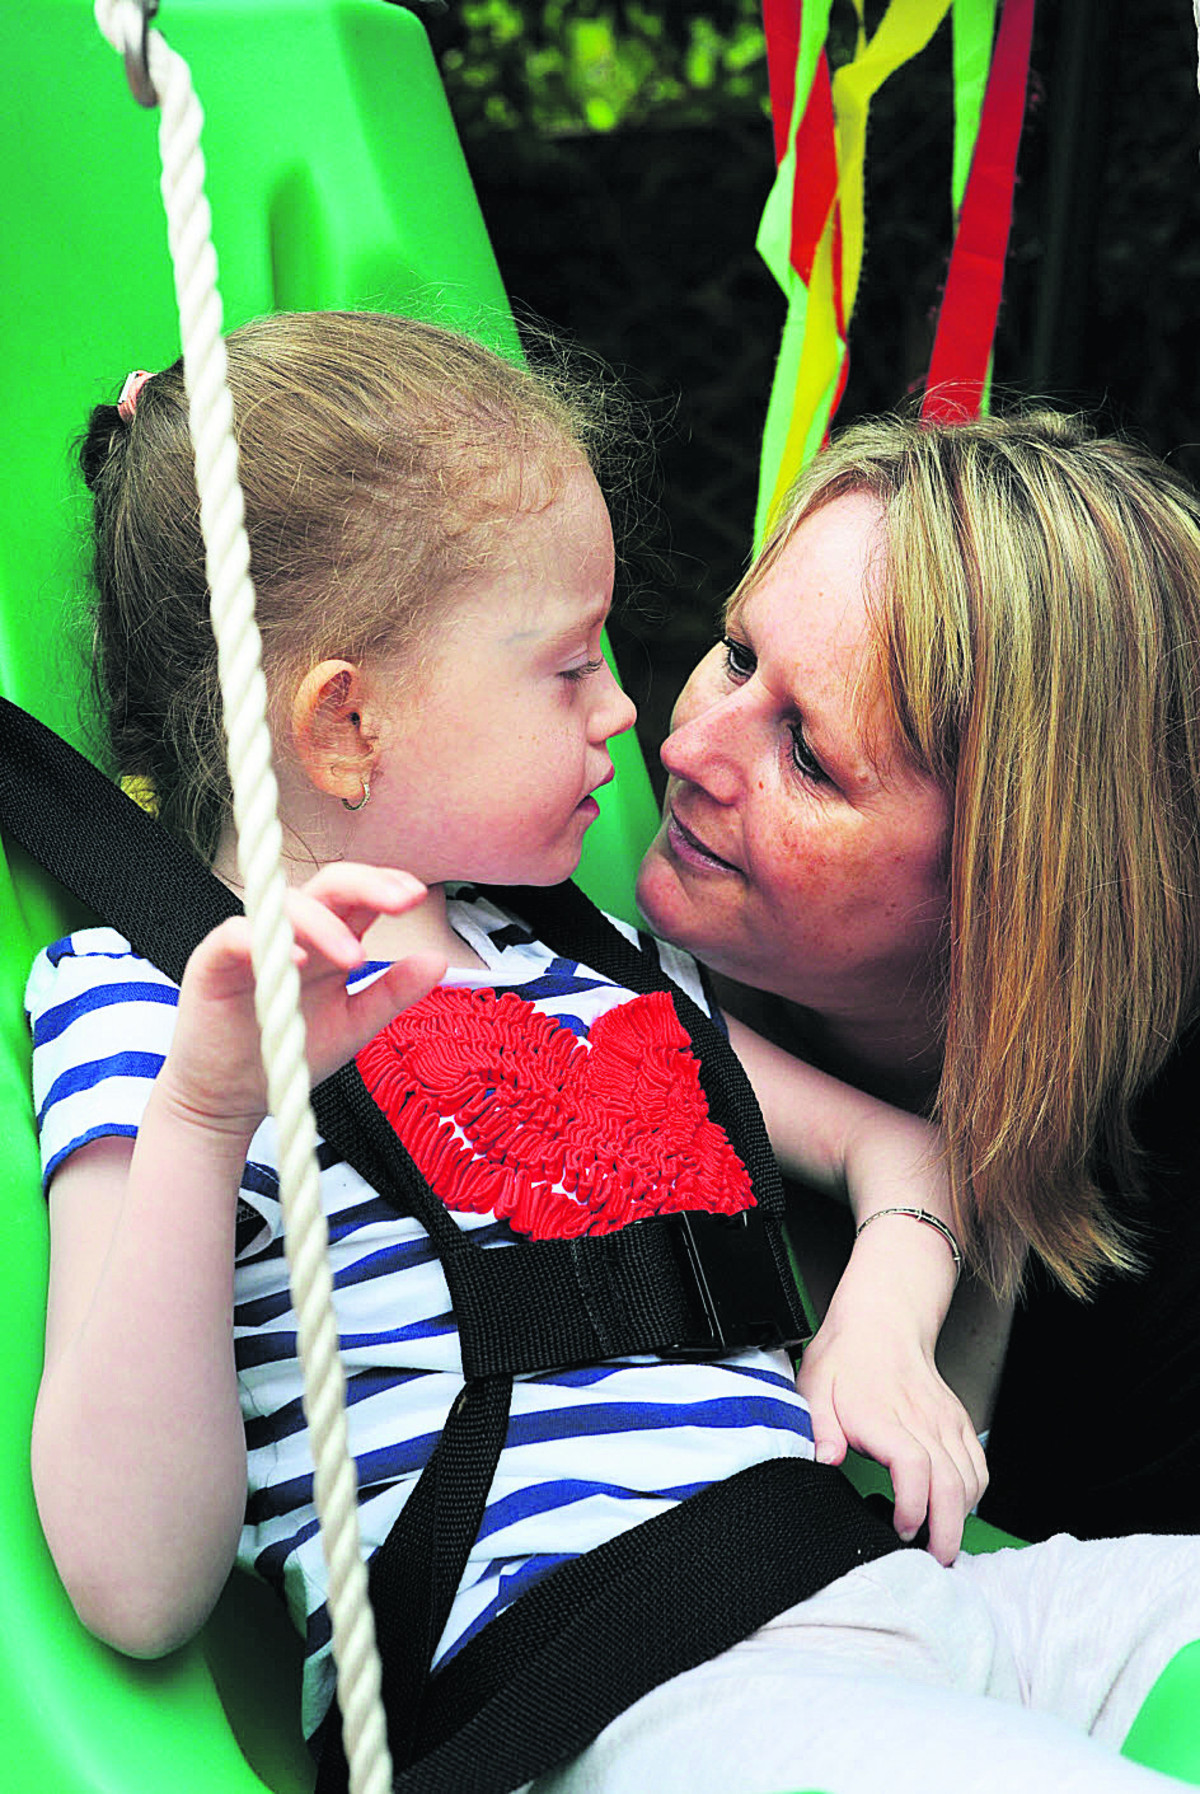 HELPING: Tara Docherty and her daughter Chanel Greenaway Picture: OX67988 Jon Lewis